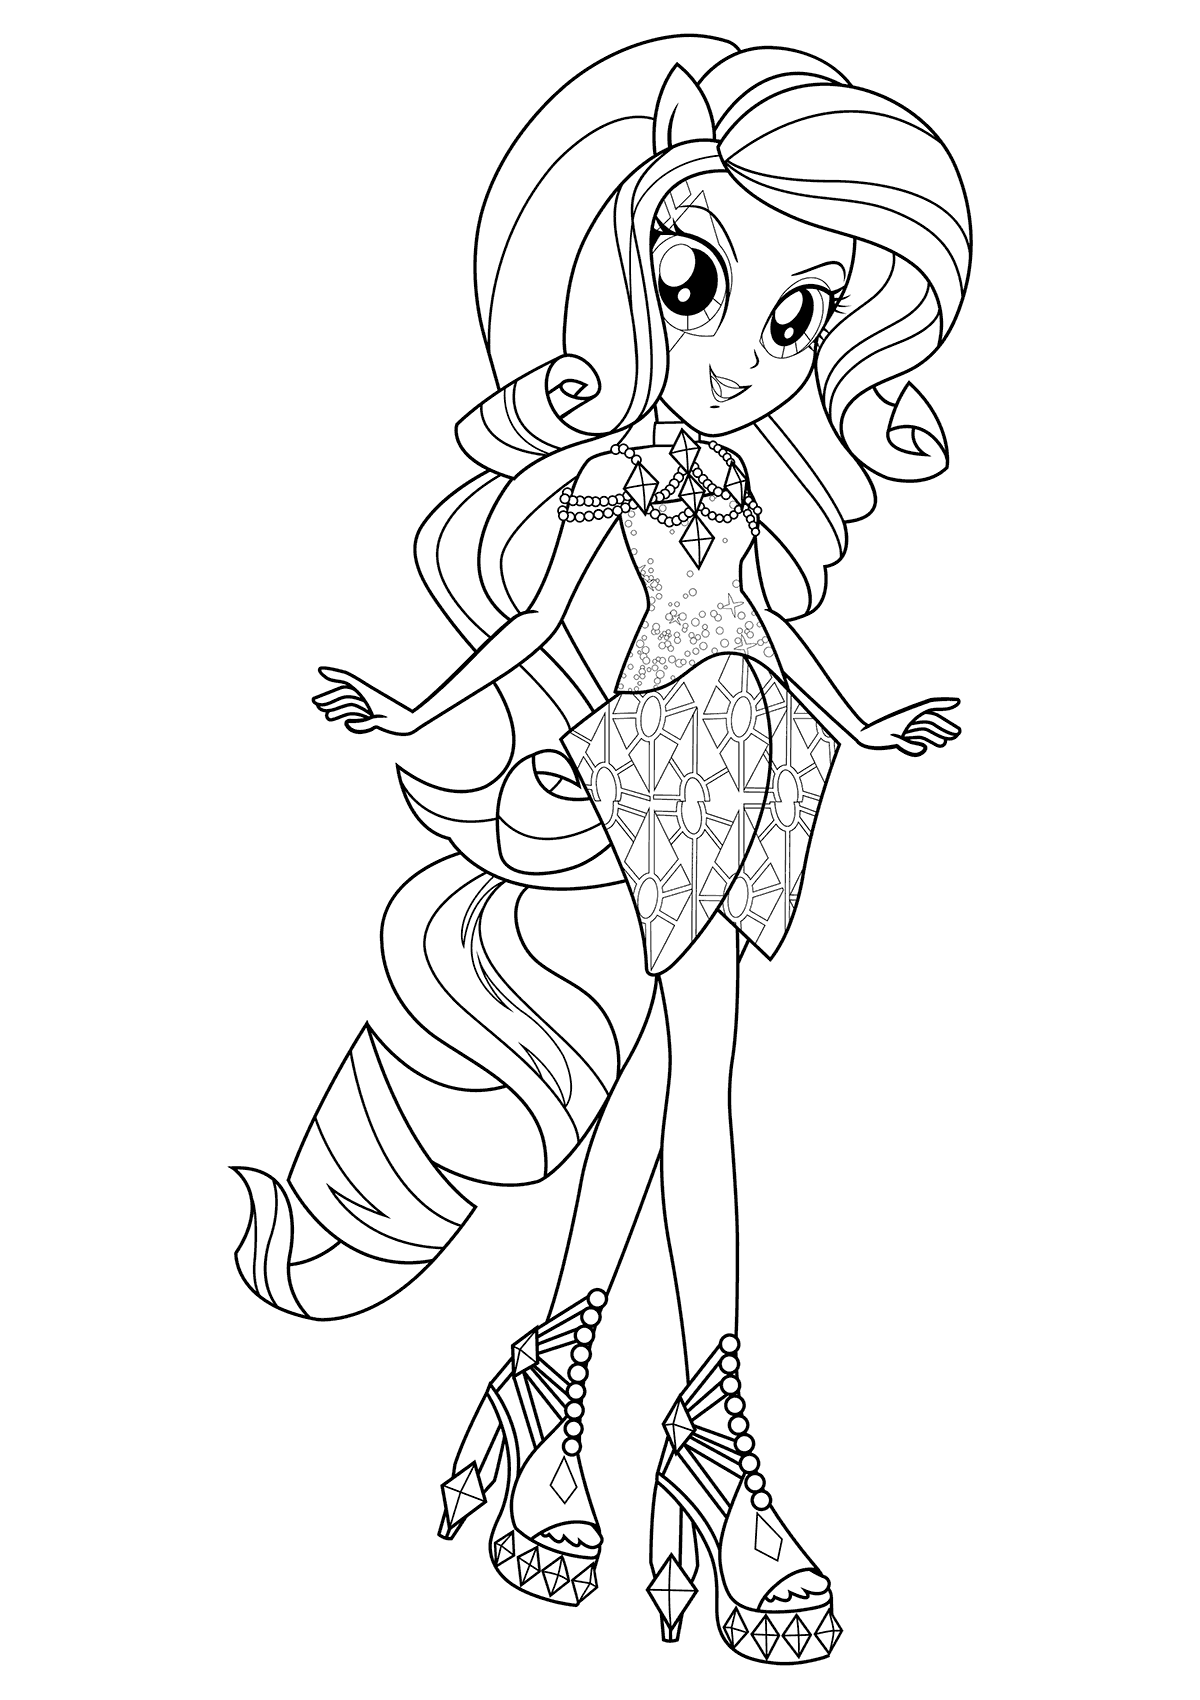 - Equestria Girls Coloring Pages At GetDrawings Free Download